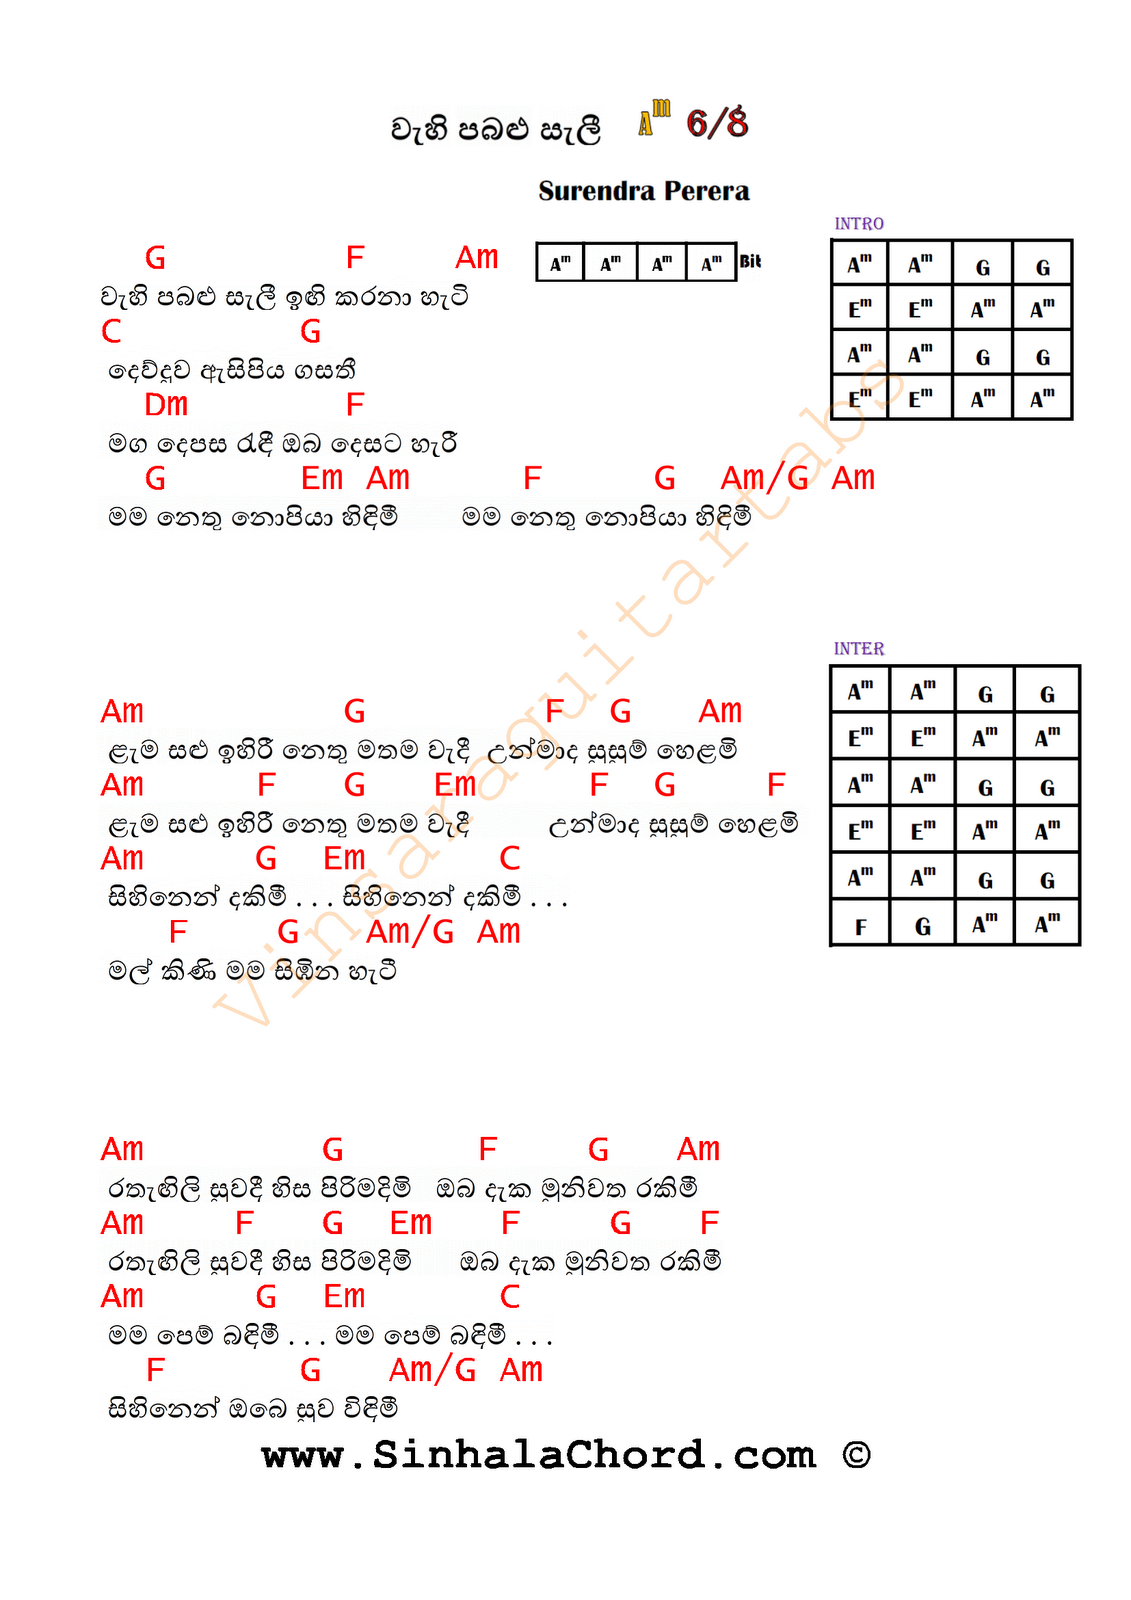 Give thanks guitar chords gallery guitar chords examples give thanks guitar chords gallery guitar chords examples sinhala midi songs fatherlandz gallery fatherlandz gallery hexwebz Choice Image